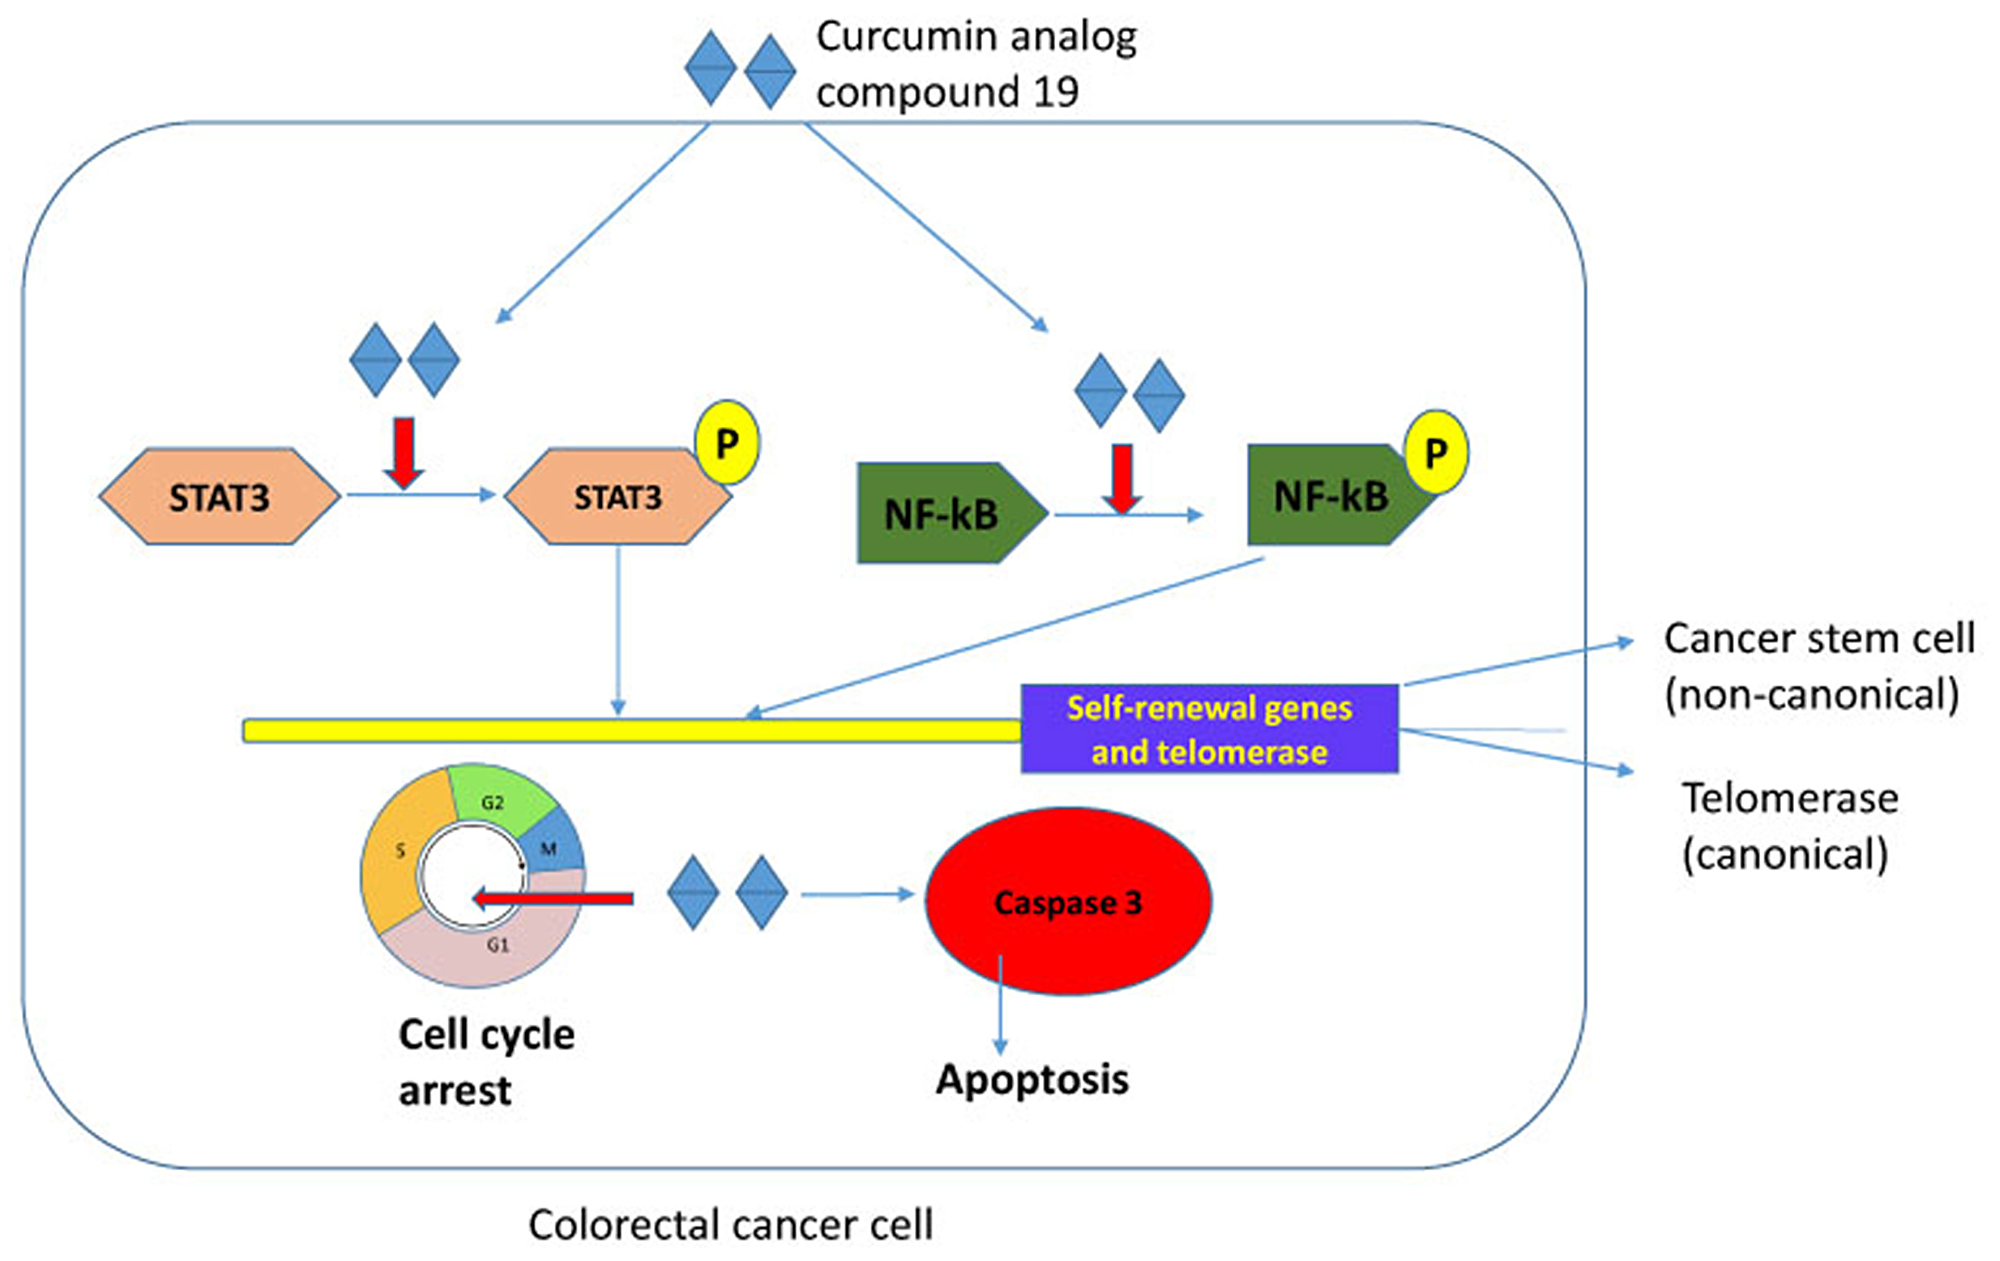 Schematic representation of compound 19 in colorectal cancer cells.